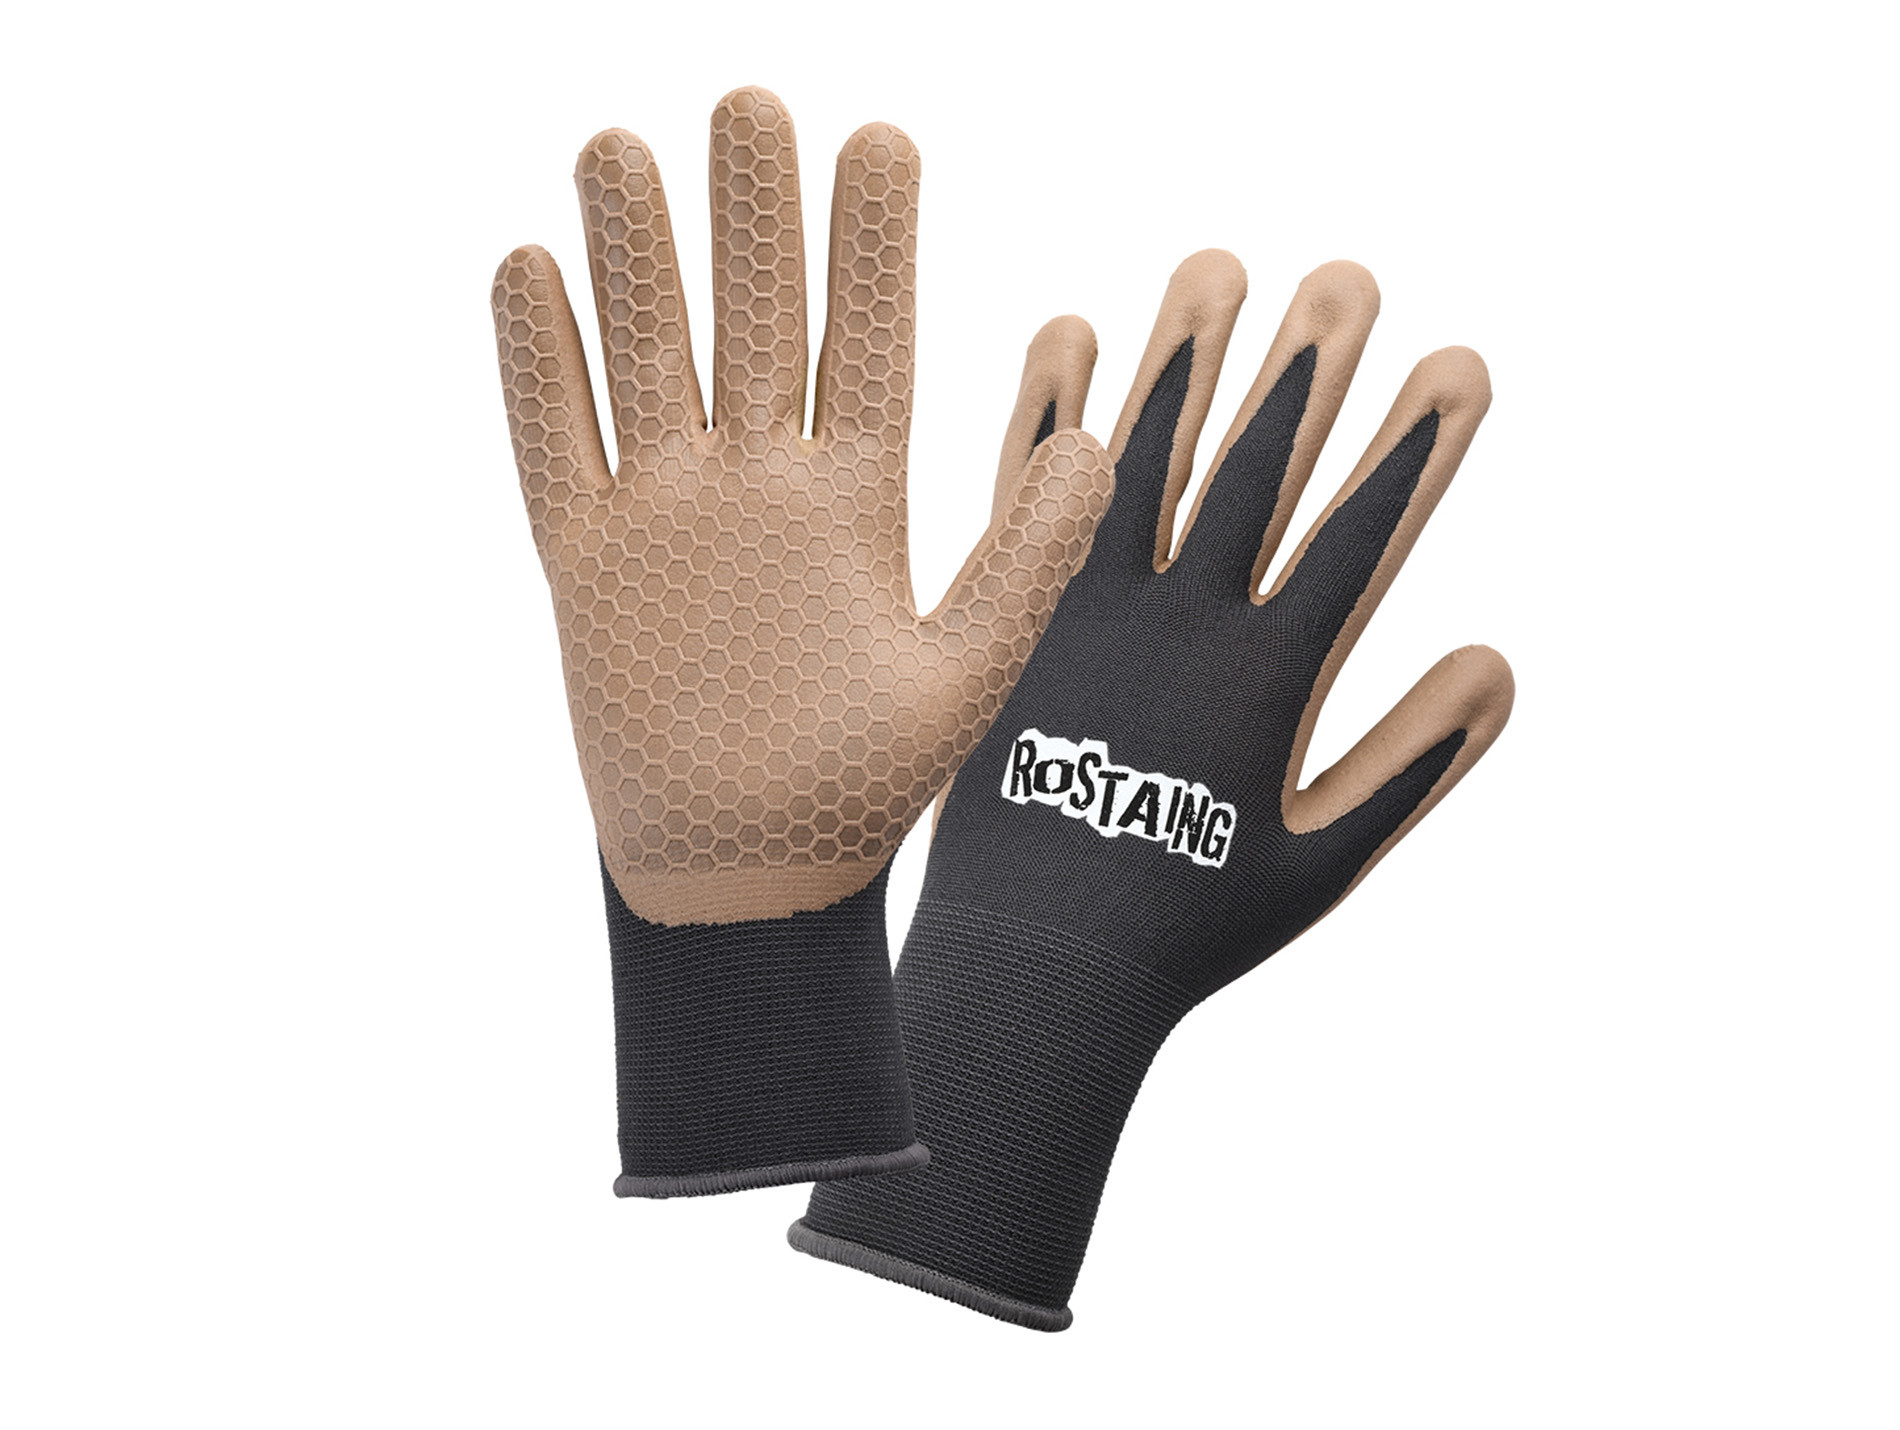 Gants de protection jardinage ROSTAING One4all